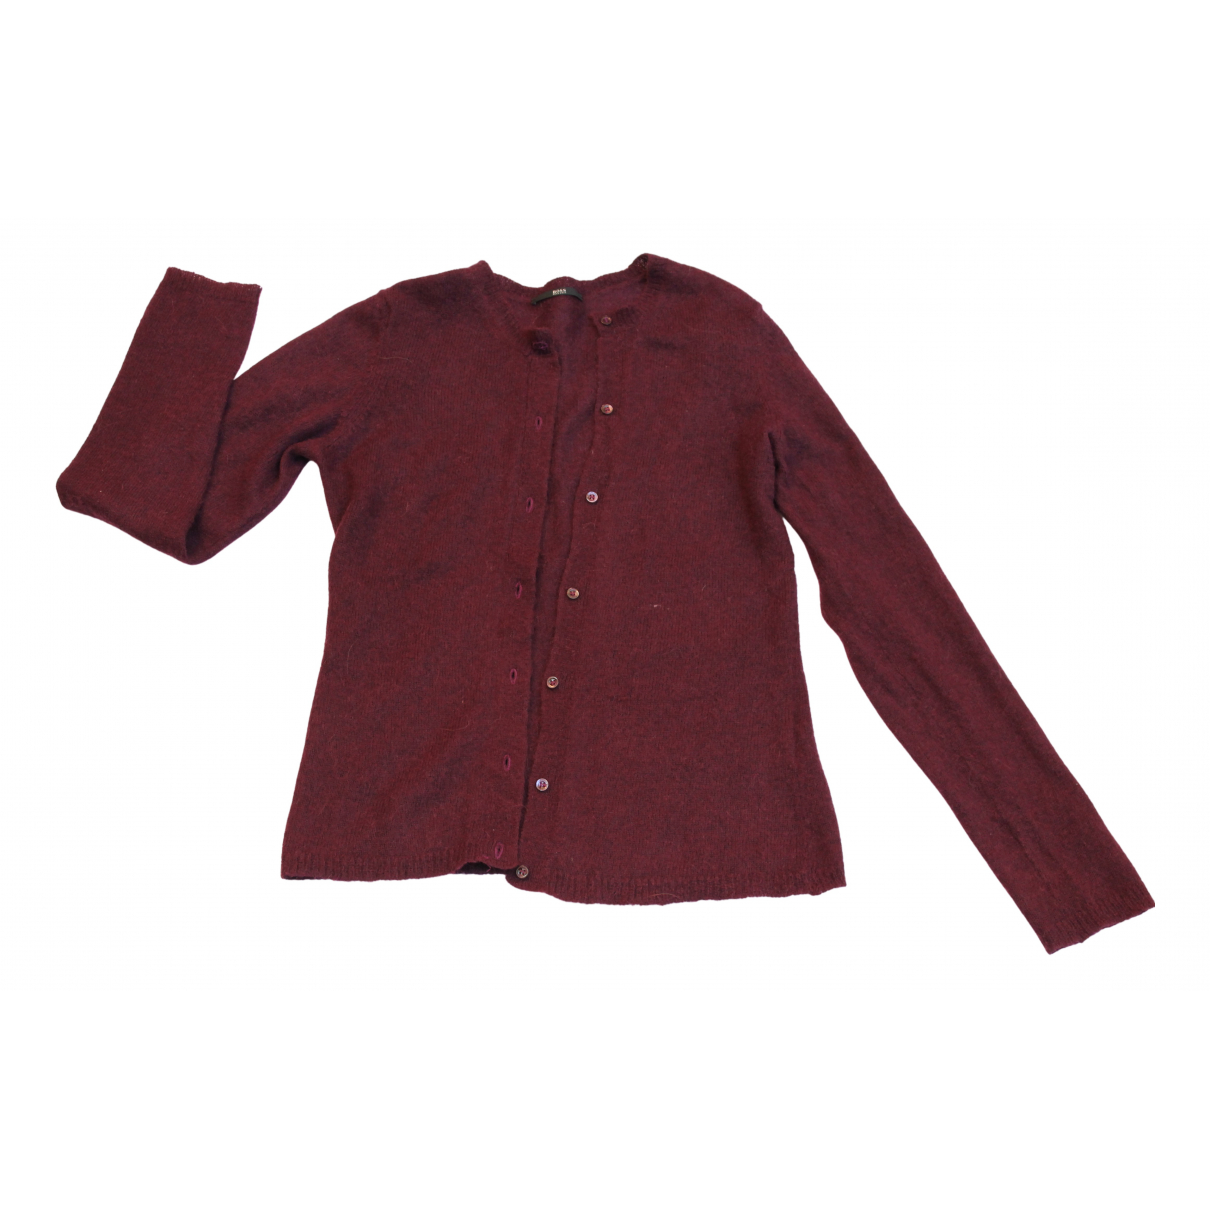 Boss N Burgundy Wool Knitwear for Women S International